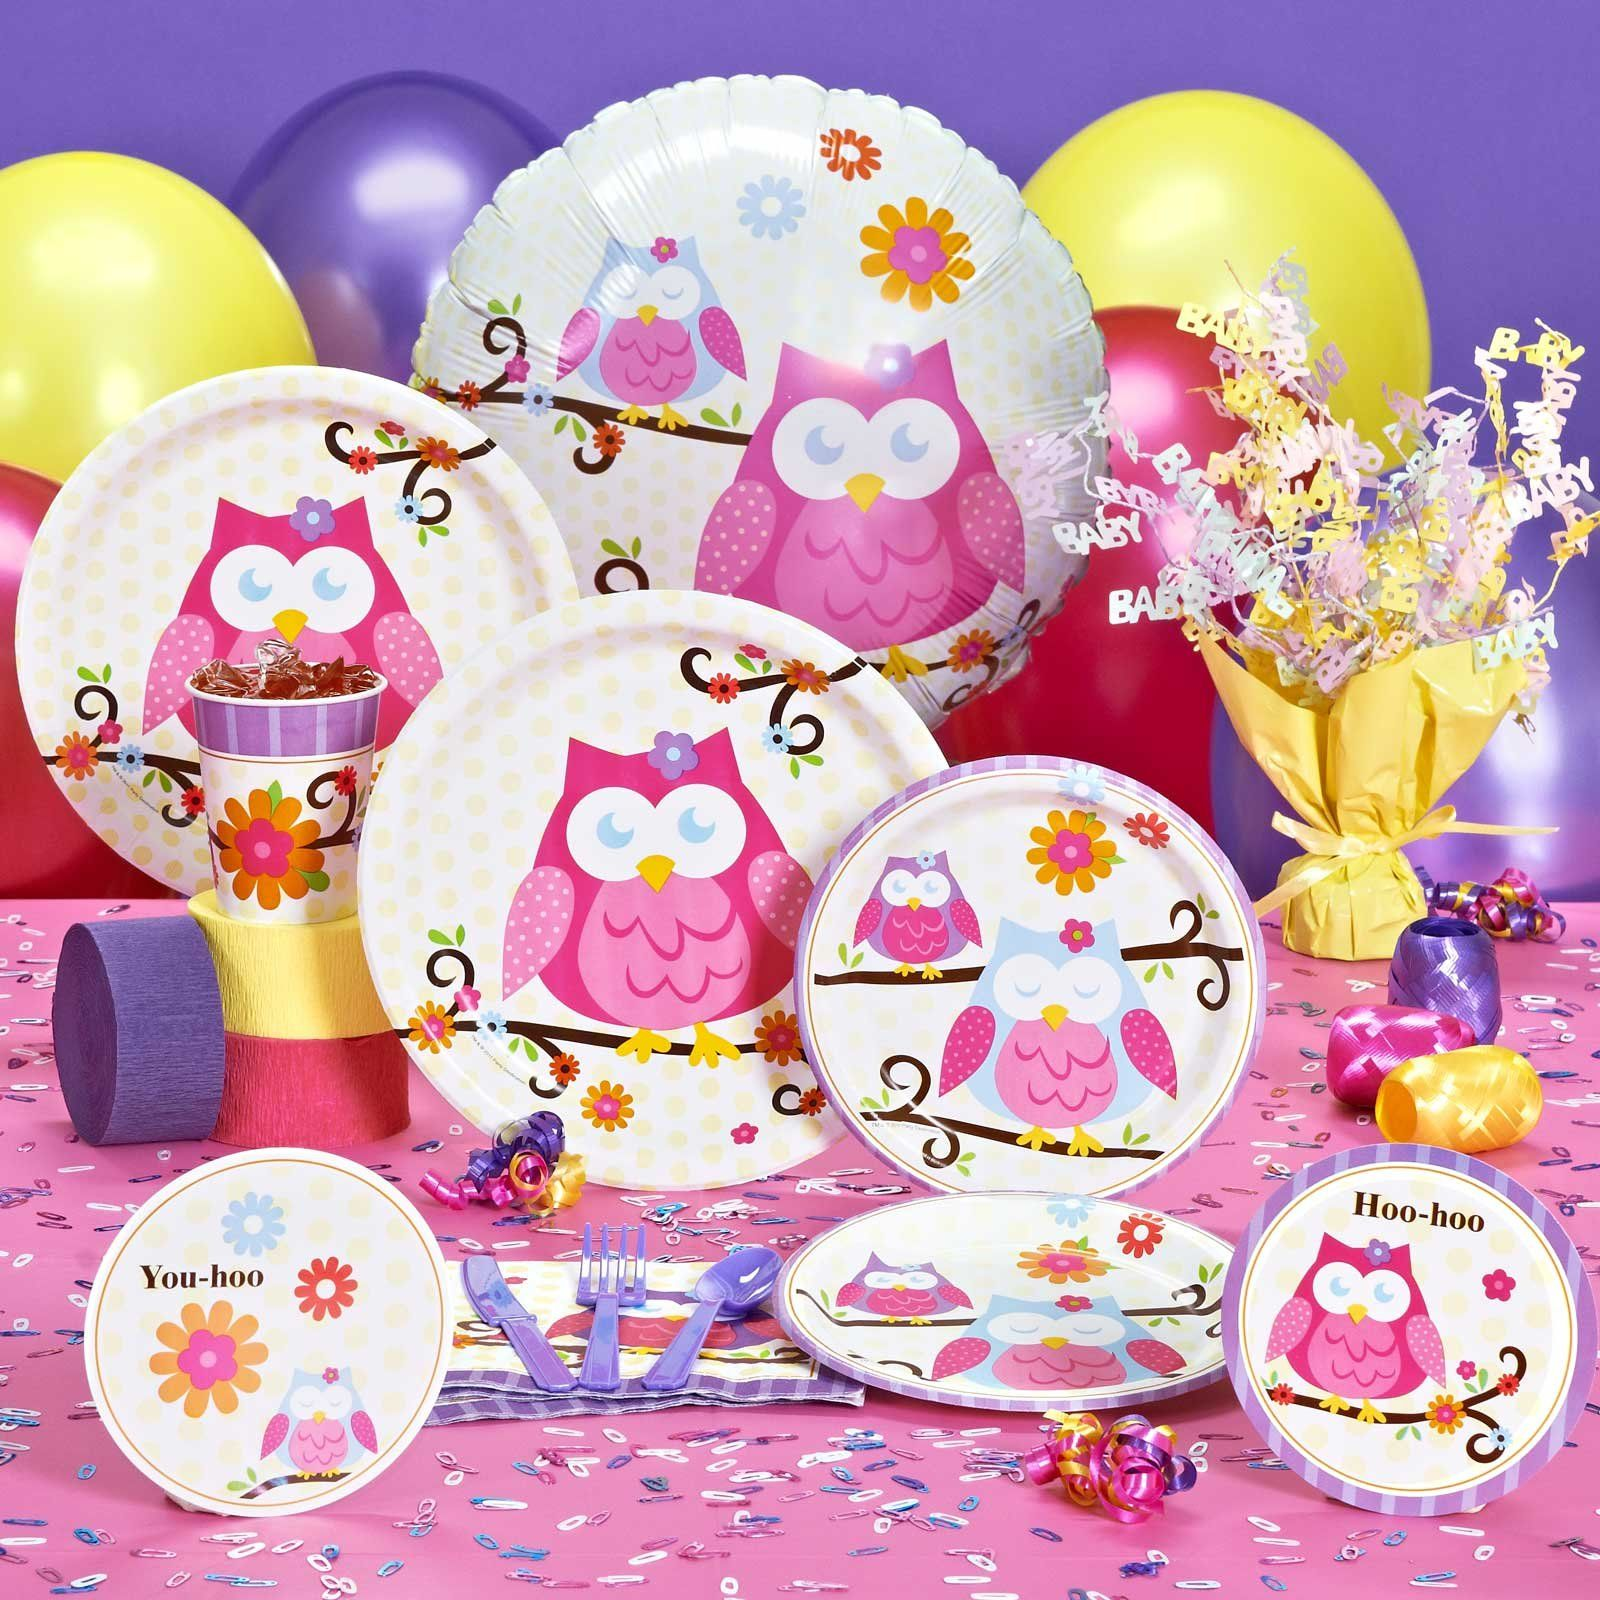 Owl Baby Shower Supplies: Owl Blossom Baby Shower Party Supplies